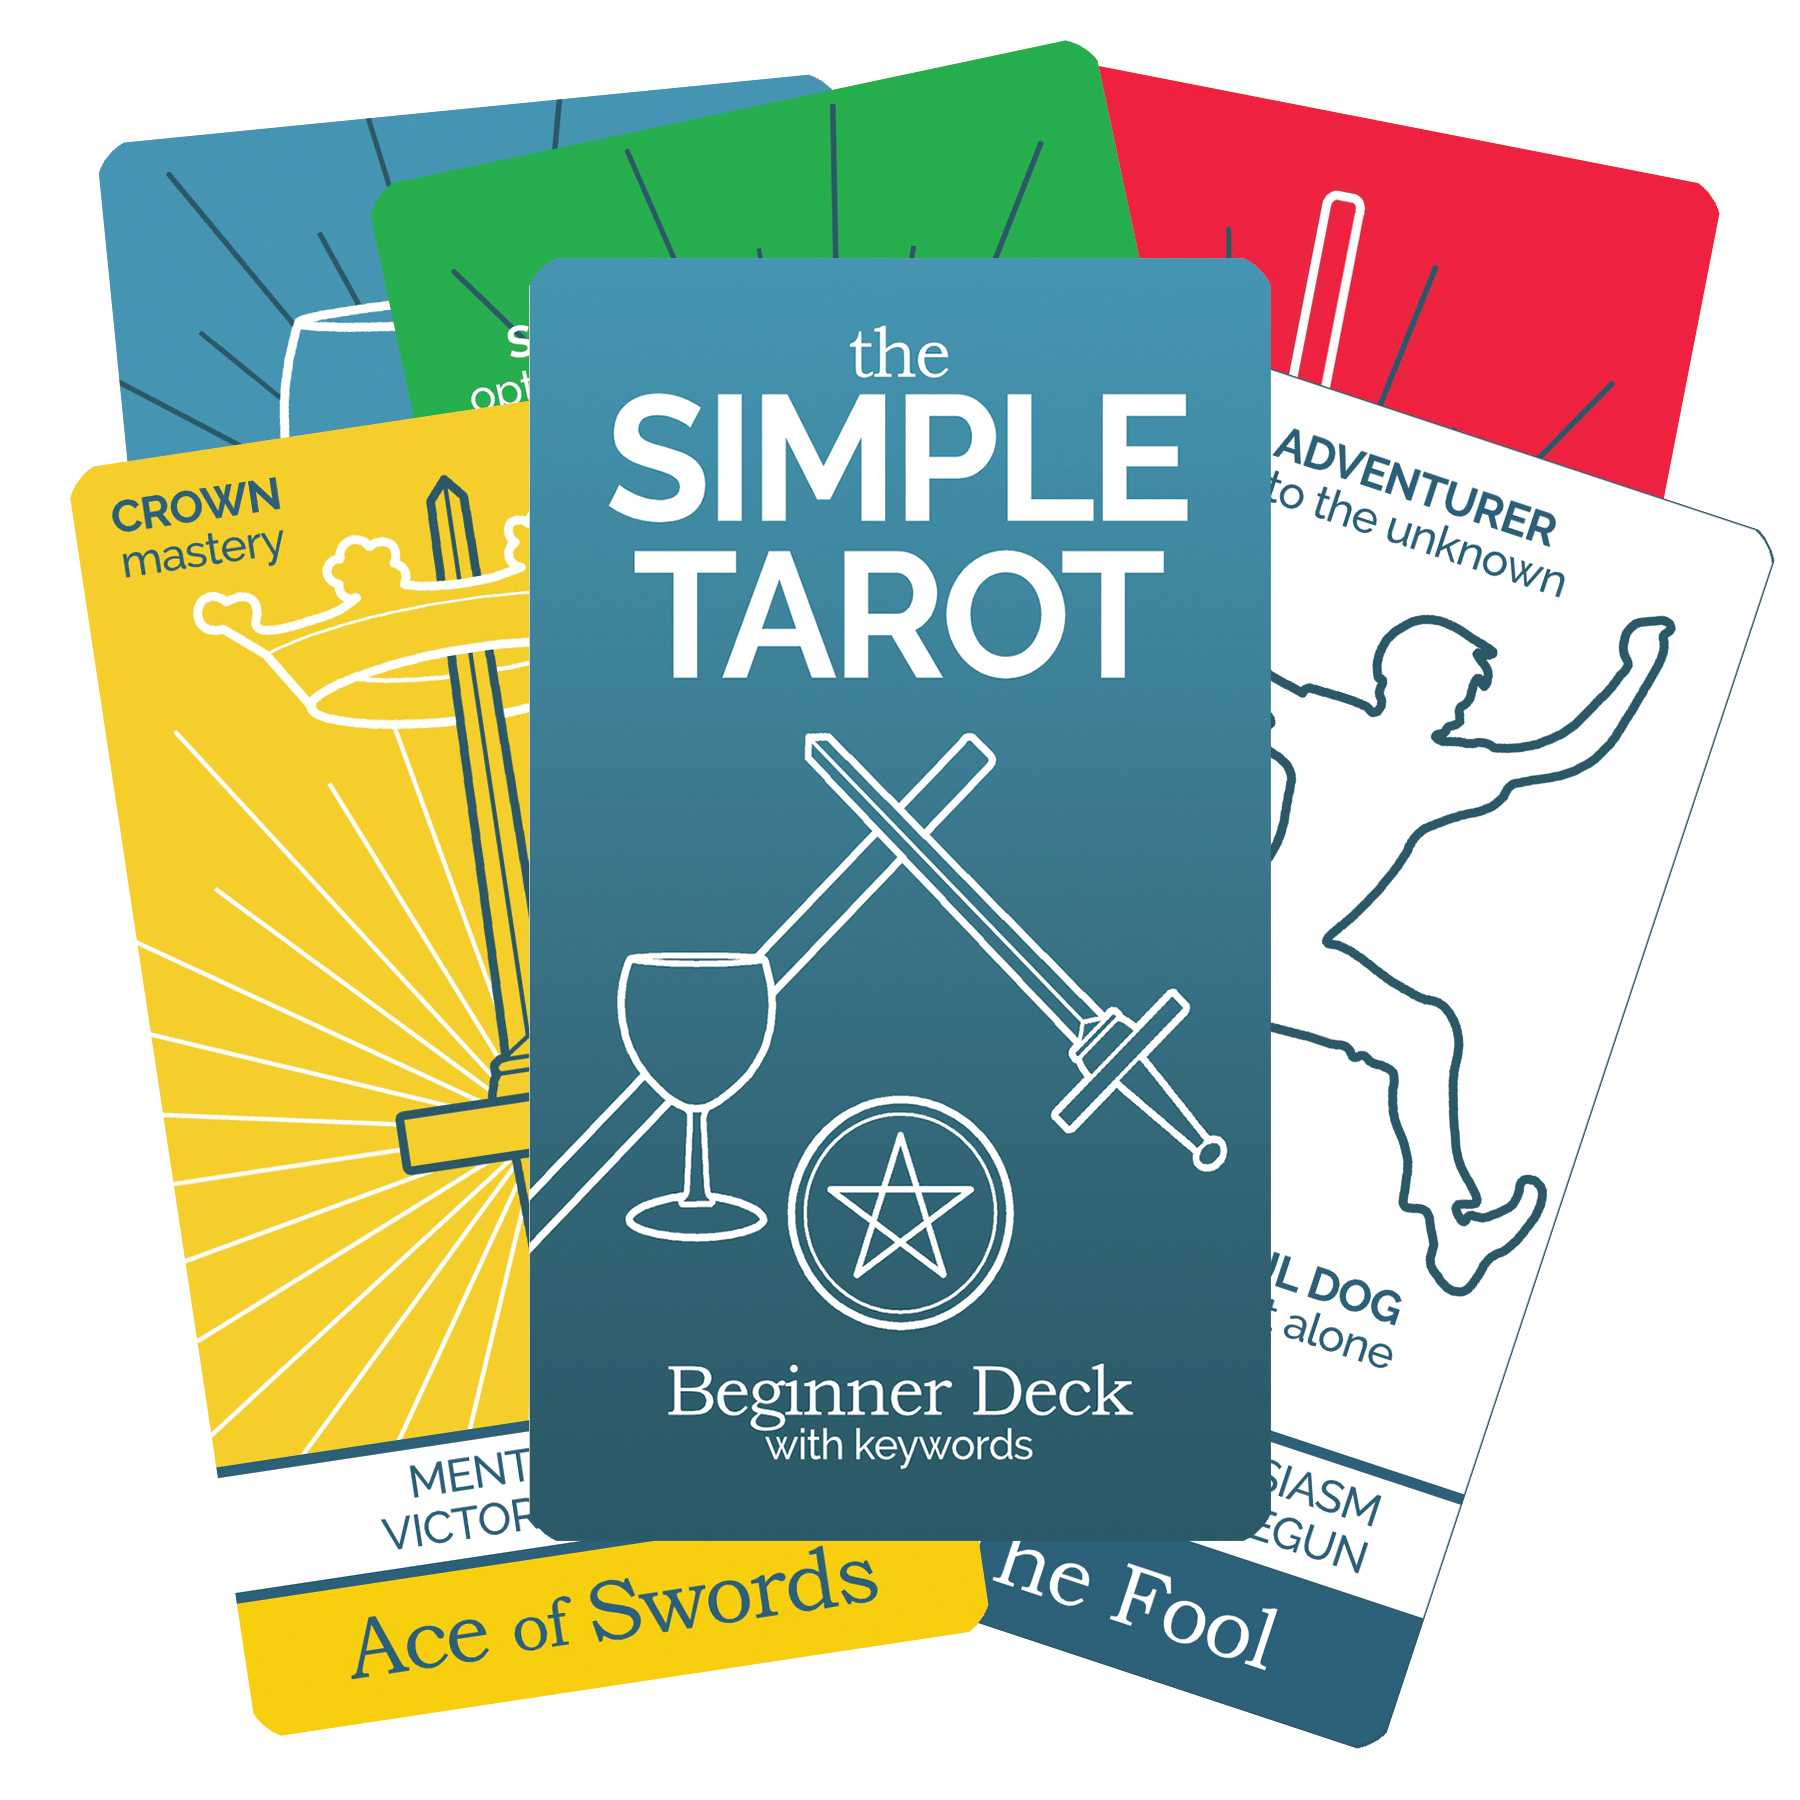 The Simple Tarot Deck Beginner Version with tarot keywords.